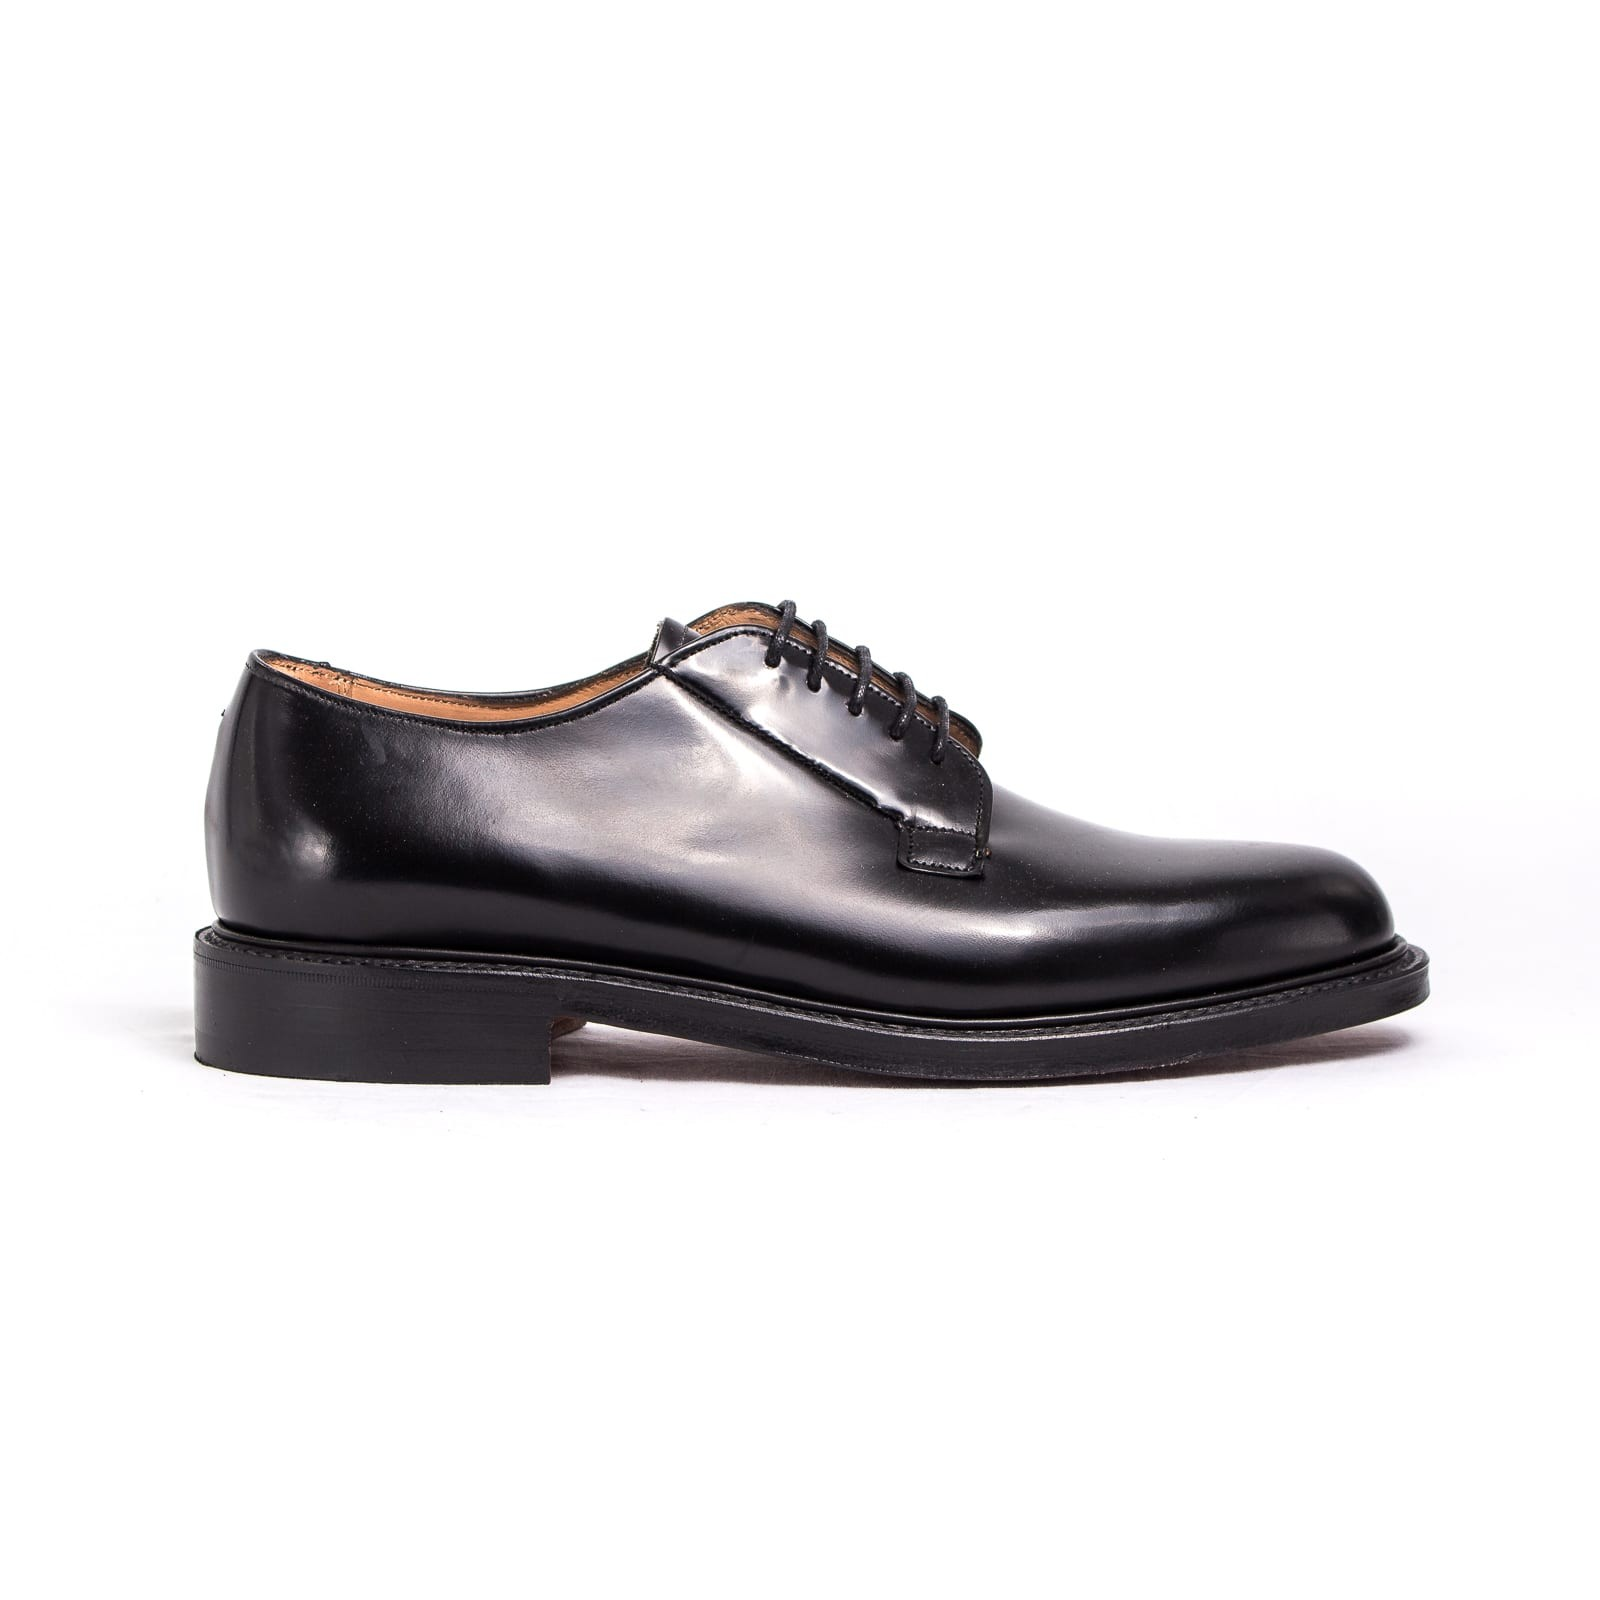 mod. Deal, derby blucher, black hi-shine, double leather sole, fitting G, last 175